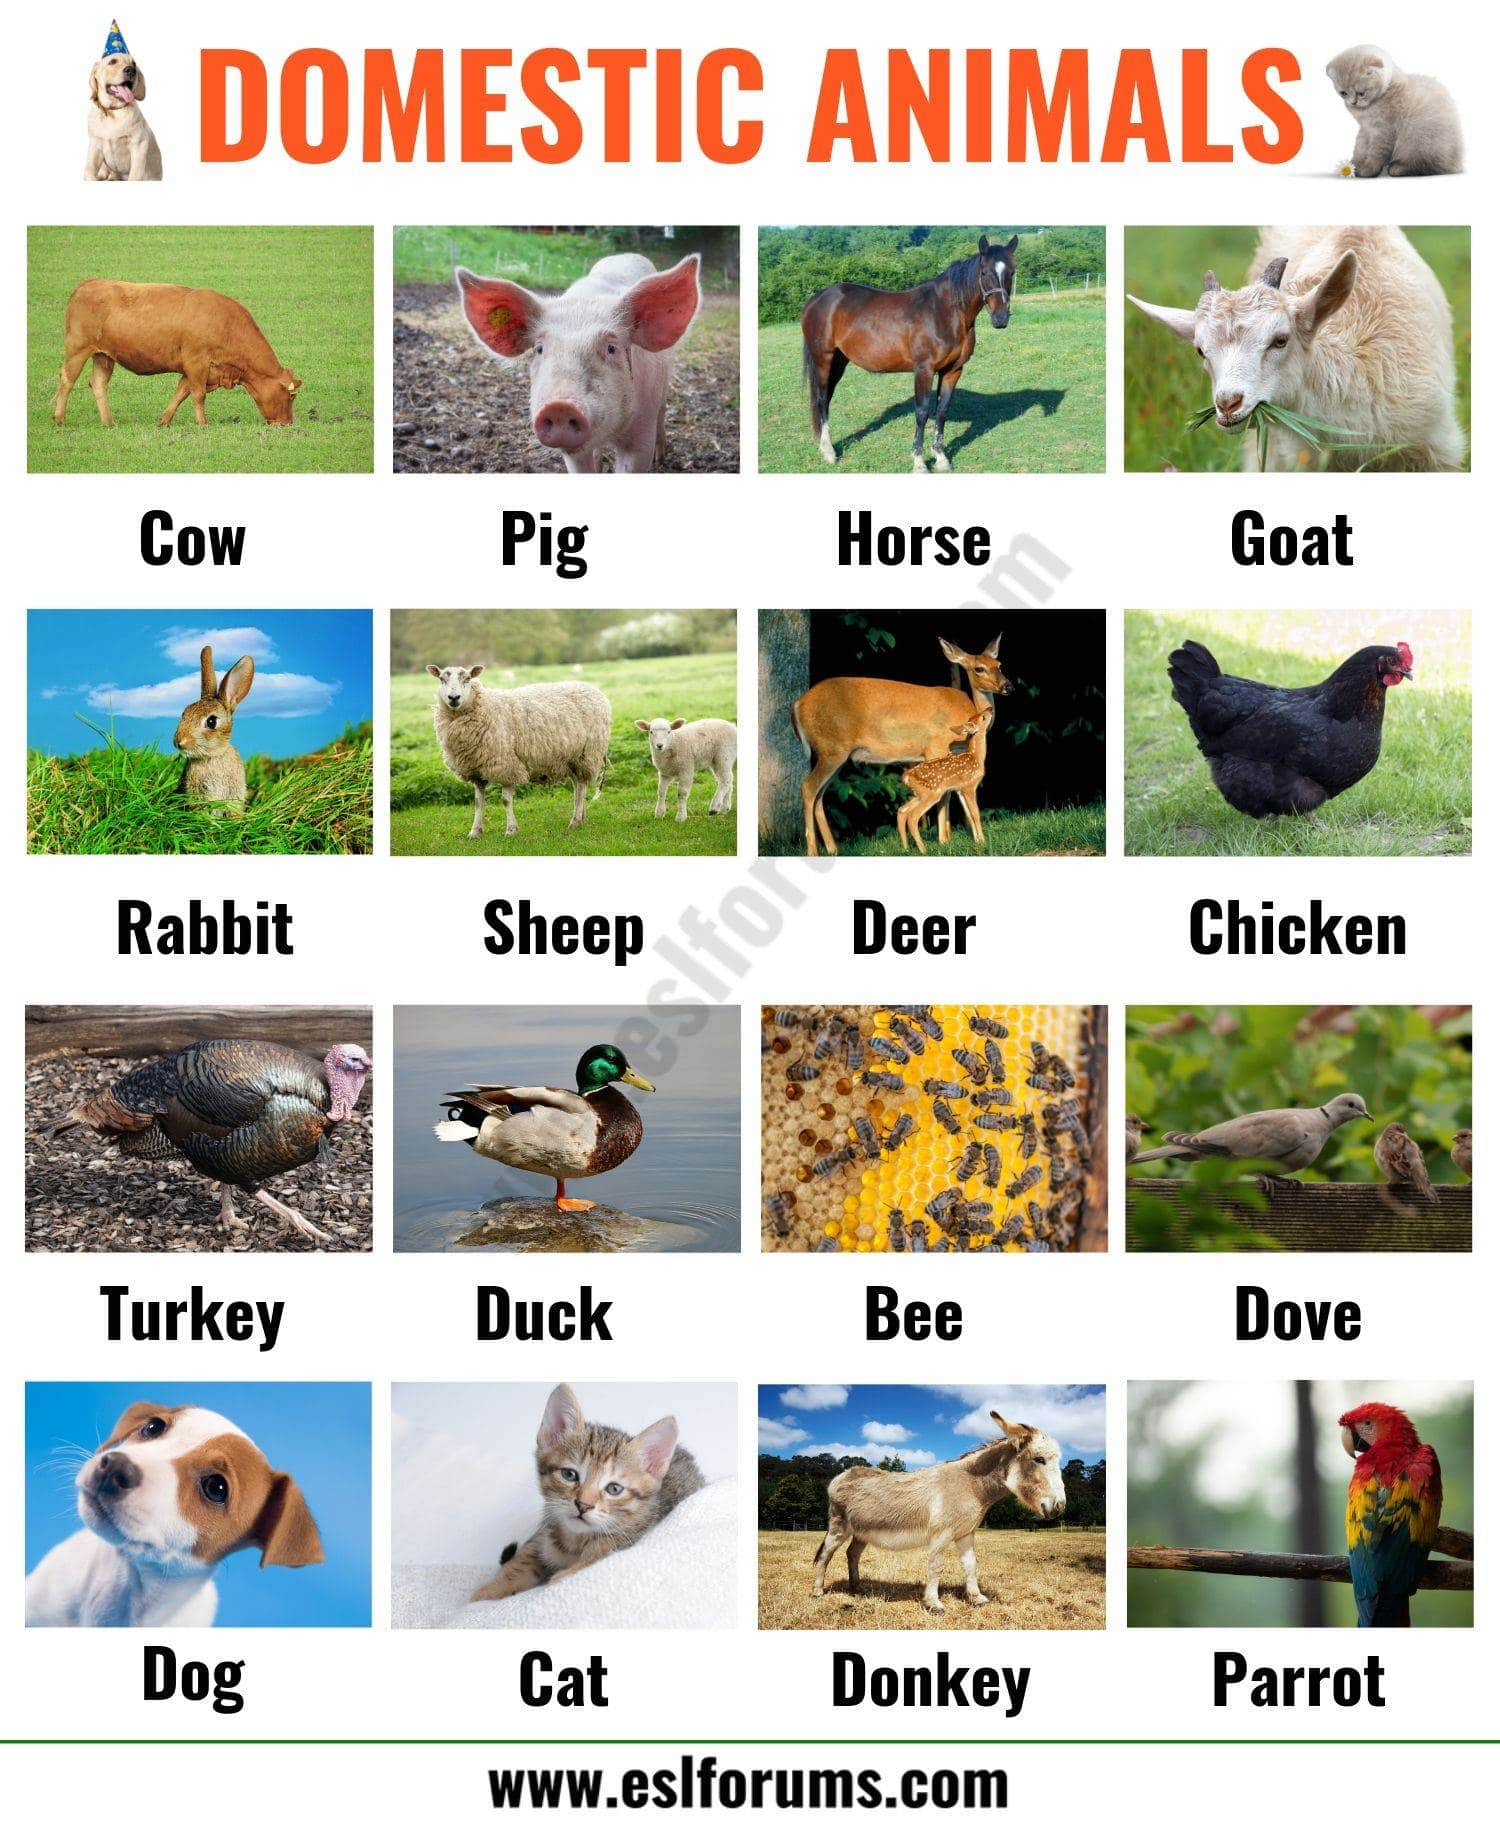 Farm Animals: List of 15+ Popular Farm/ Domestic Animals in English